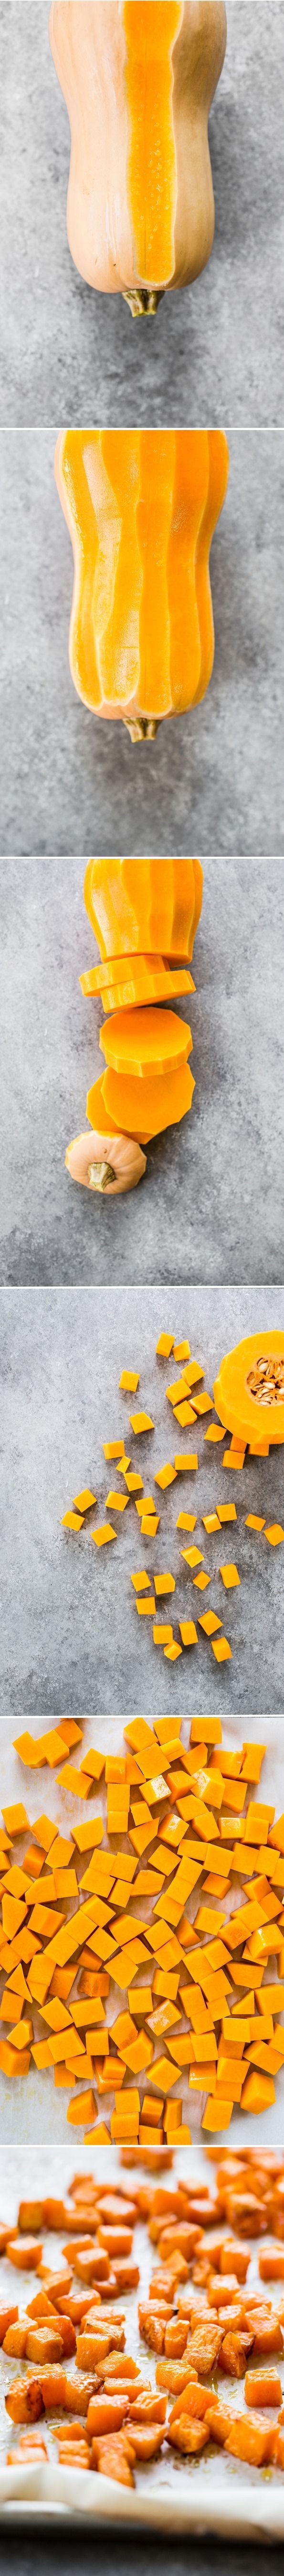 A Simple Roasted Butternut Squash Salad - My all time favorite way to prepare butternut squash (you'll want to eat it straight from the pan!).